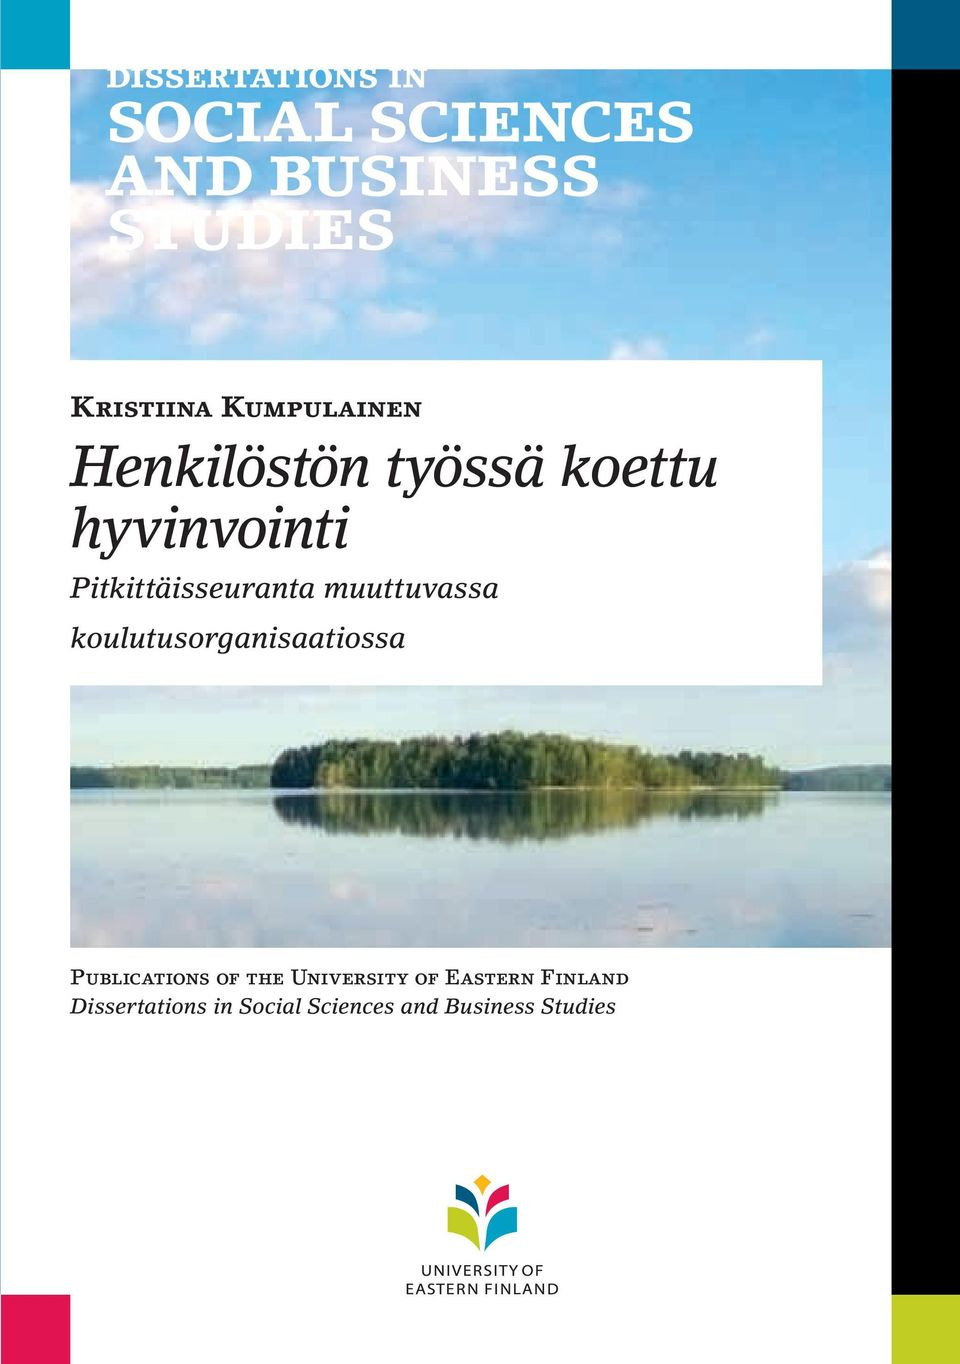 koulutusorganisaatiossa Publications of the University